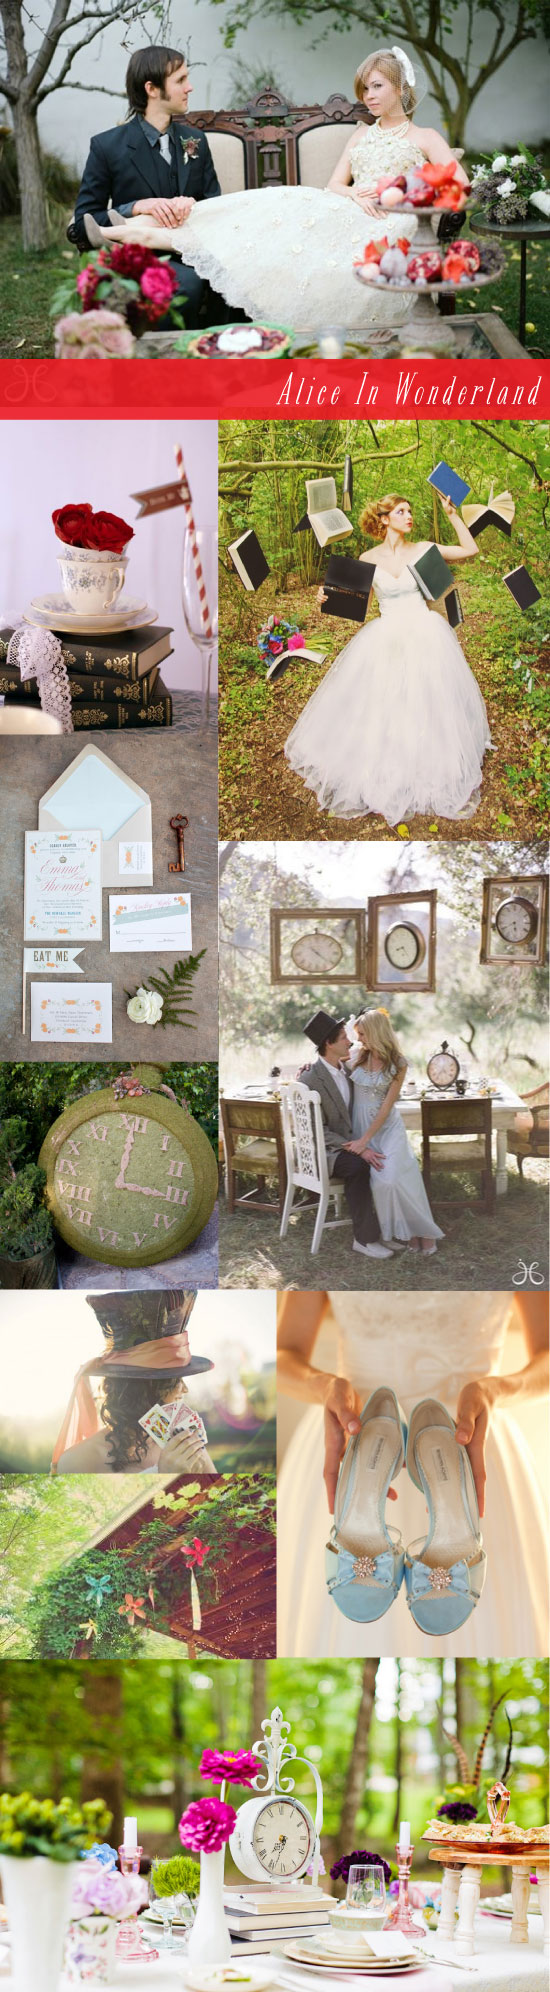 Alice in Wonderland wedding inspiration board